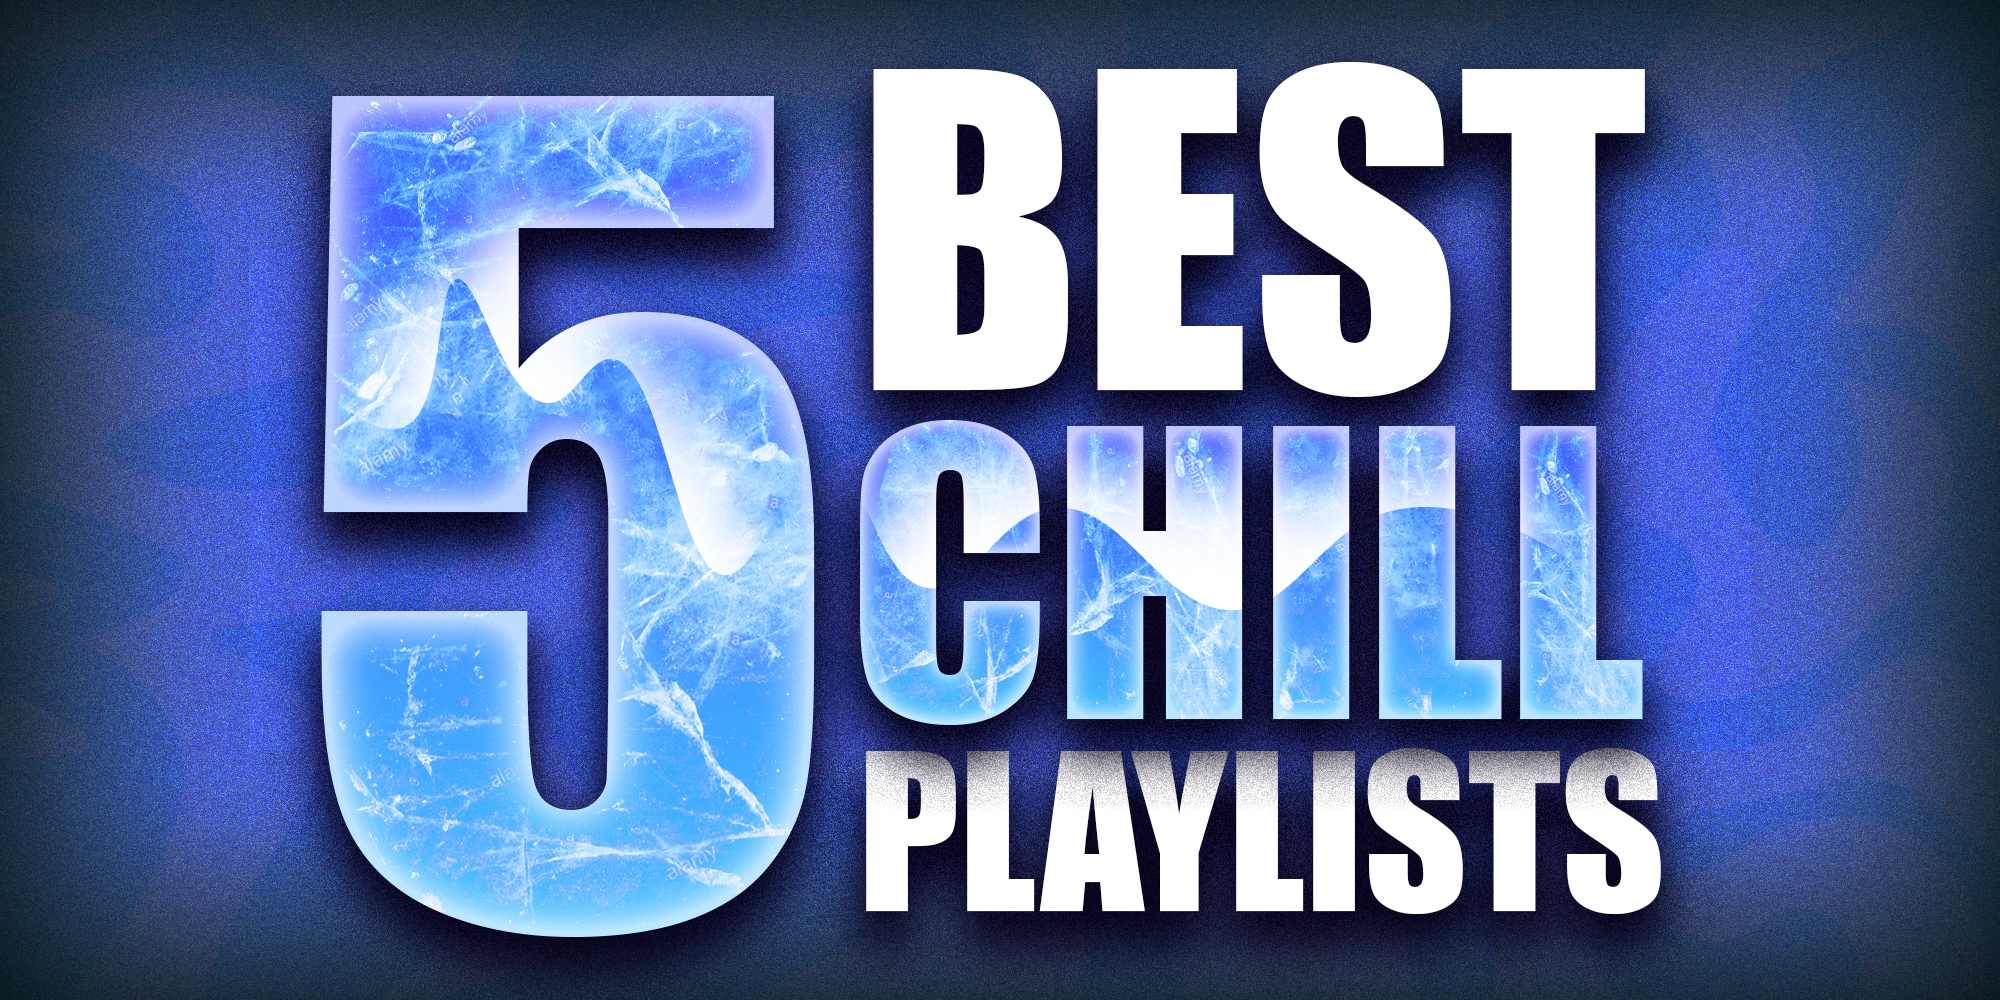 5 best chill playlists